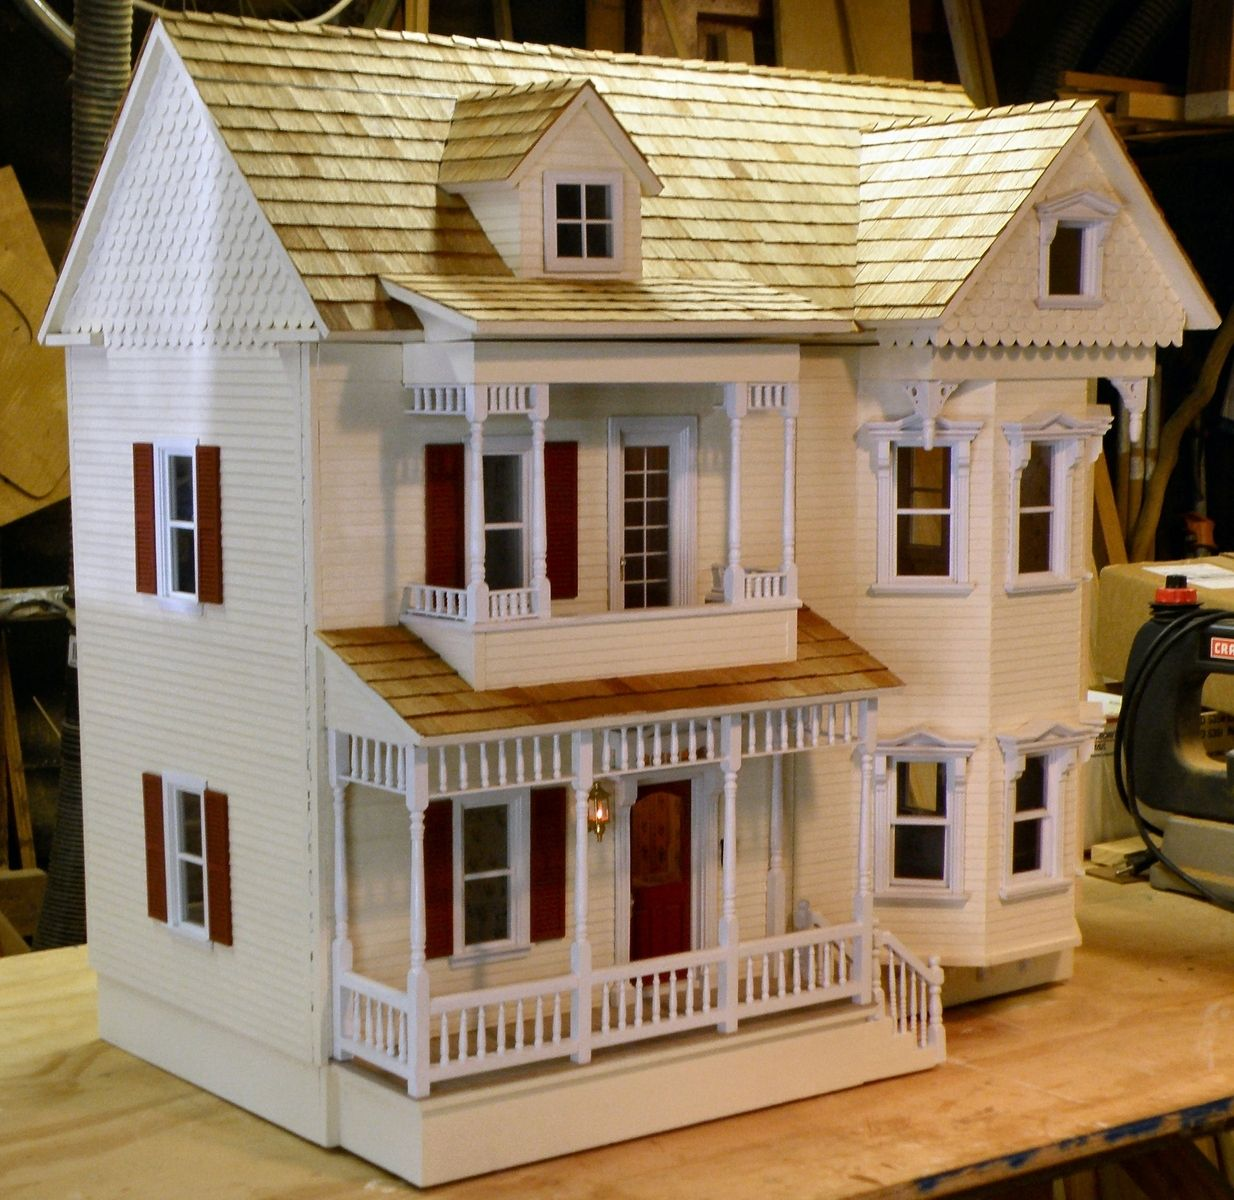 Man Crafted Dolls Houses For Sale